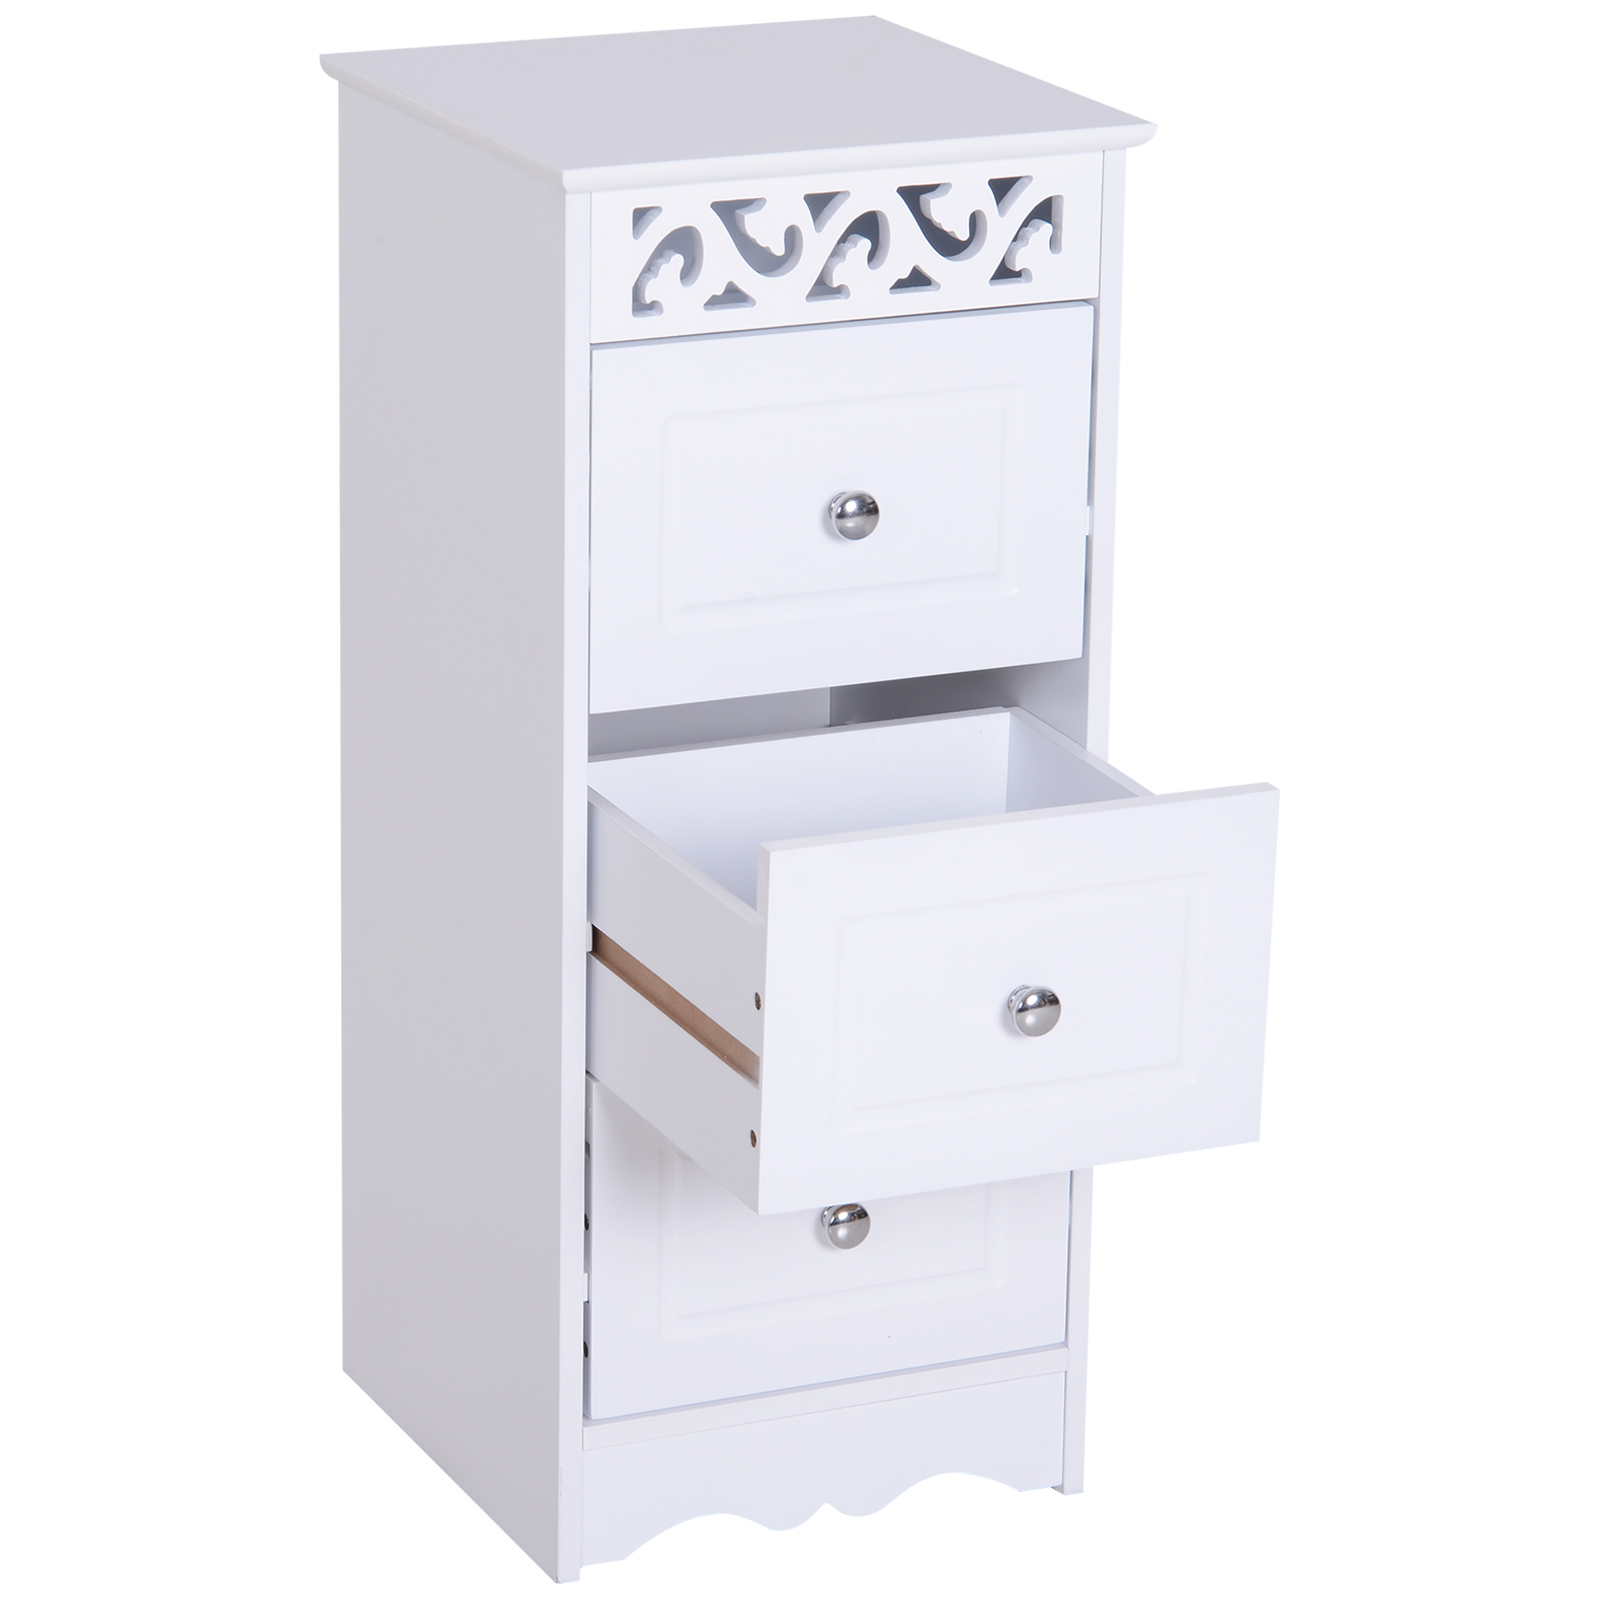 Bathroom-Cabinet-Corner-Shelf-Unit-Drawers-Tower-Cupboard-Wood-Storage-White thumbnail 8